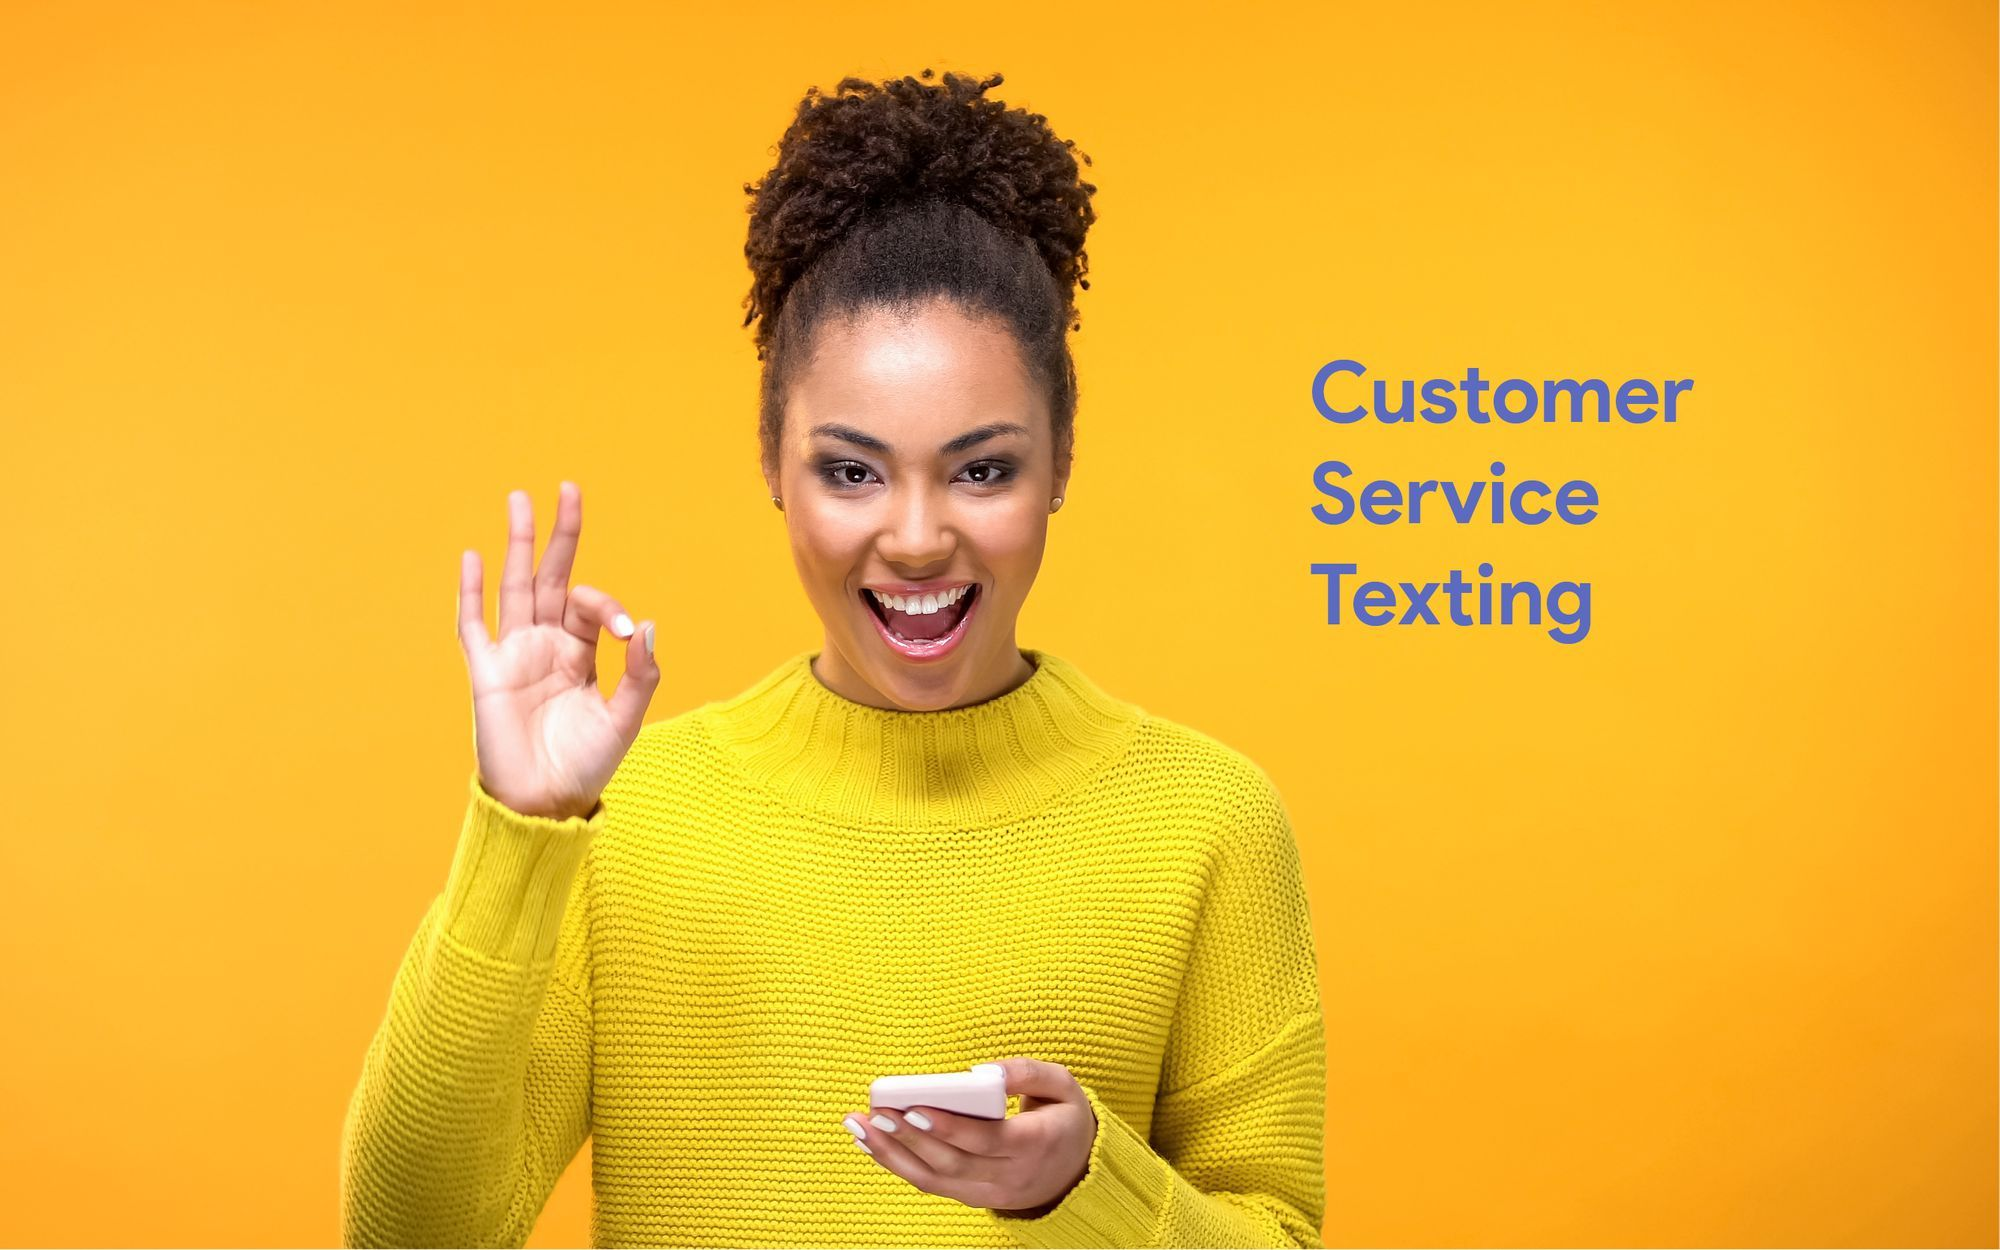 How Texting Can Help You Build Trust With Customers